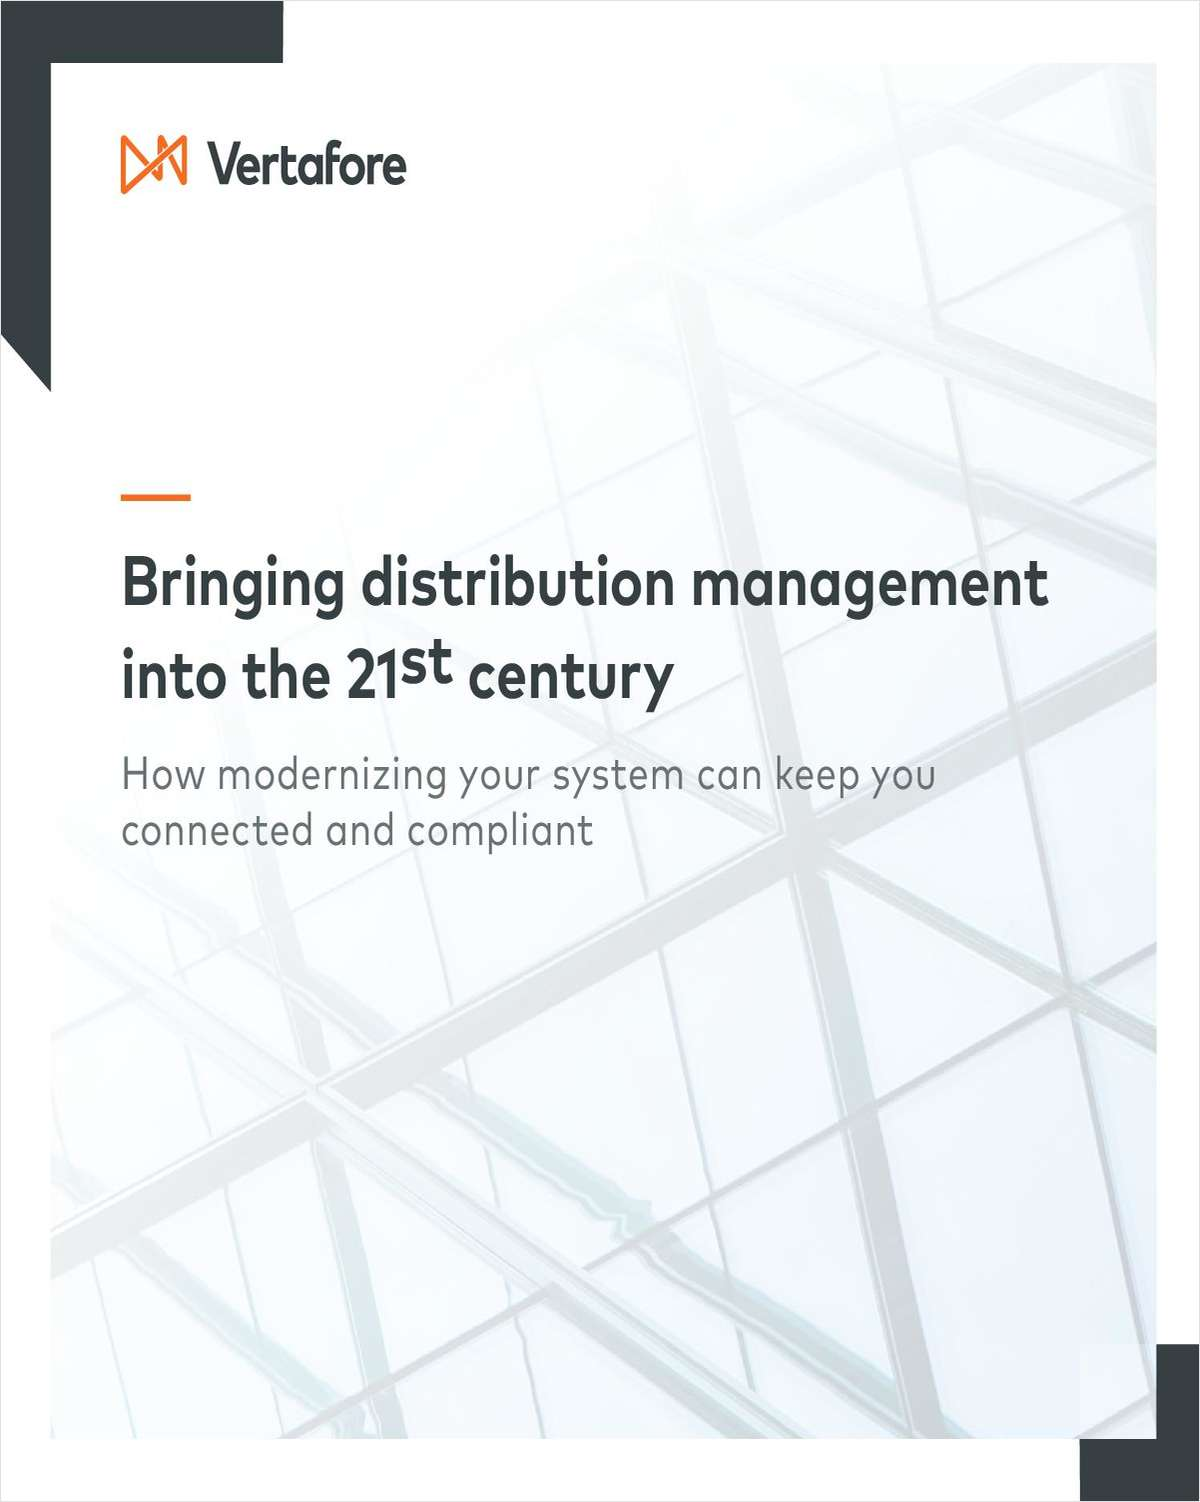 Bringing distribution management into the 21st century: How modernizing your system can keep you connected and compliant